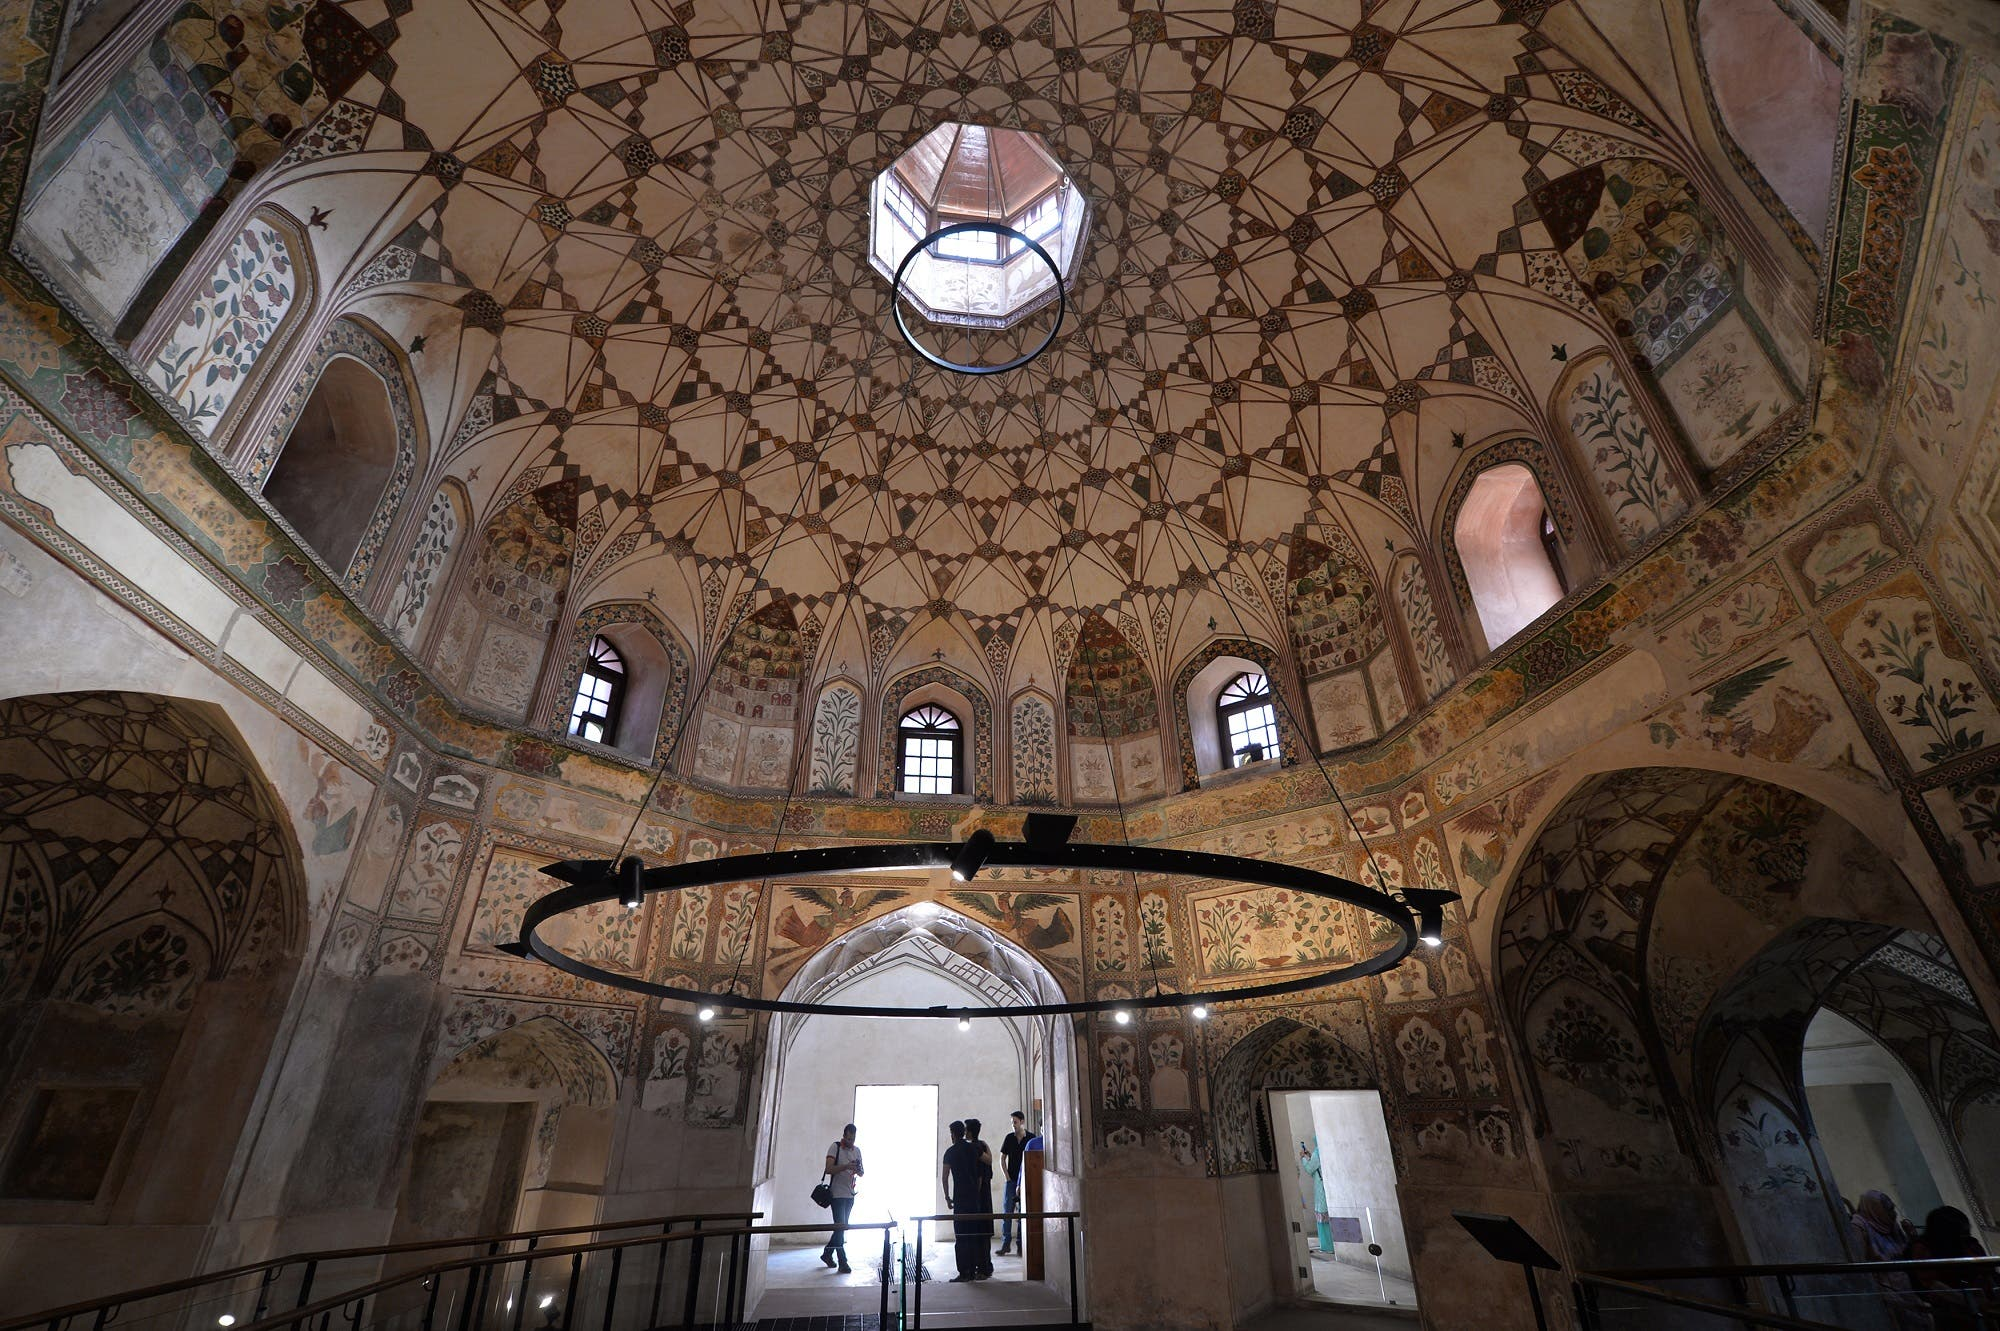 Tourists visit the Shahi Hammam, one of the only surviving 400-year-old Turkish baths in the sub-continent, in Pakistan's historic and cultural city of Lahore, on October 7, 2017. (AFP)